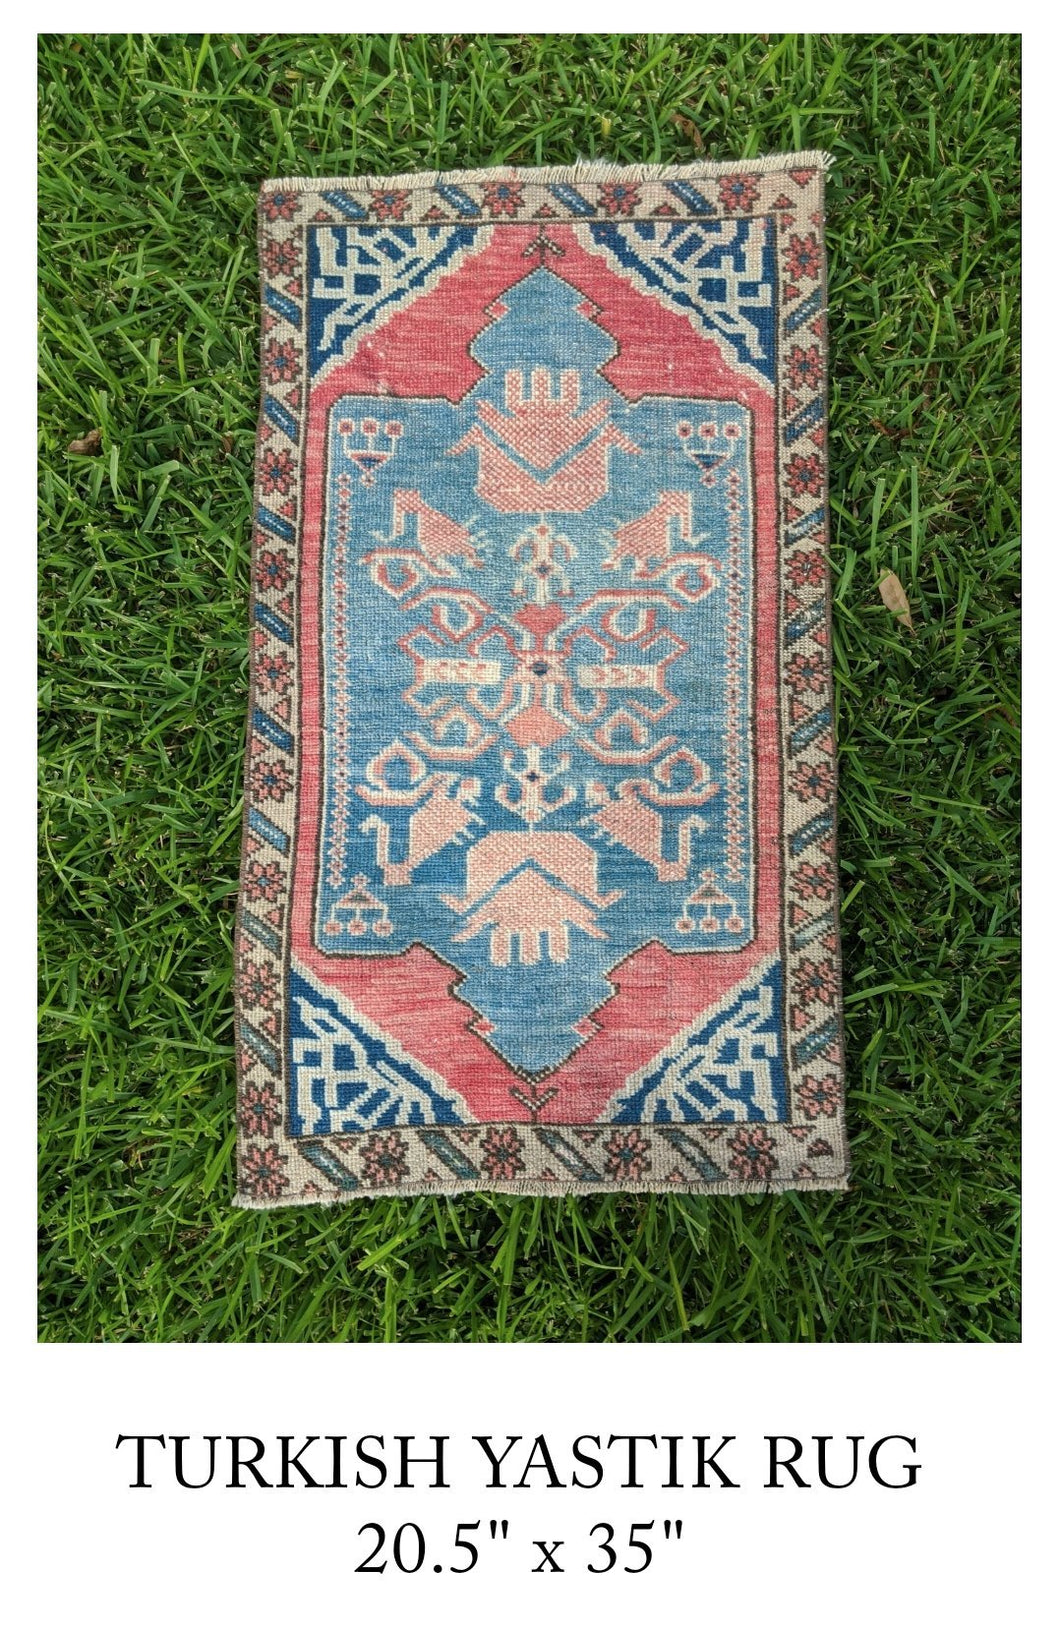 Vintage Turkish Yastik Rug